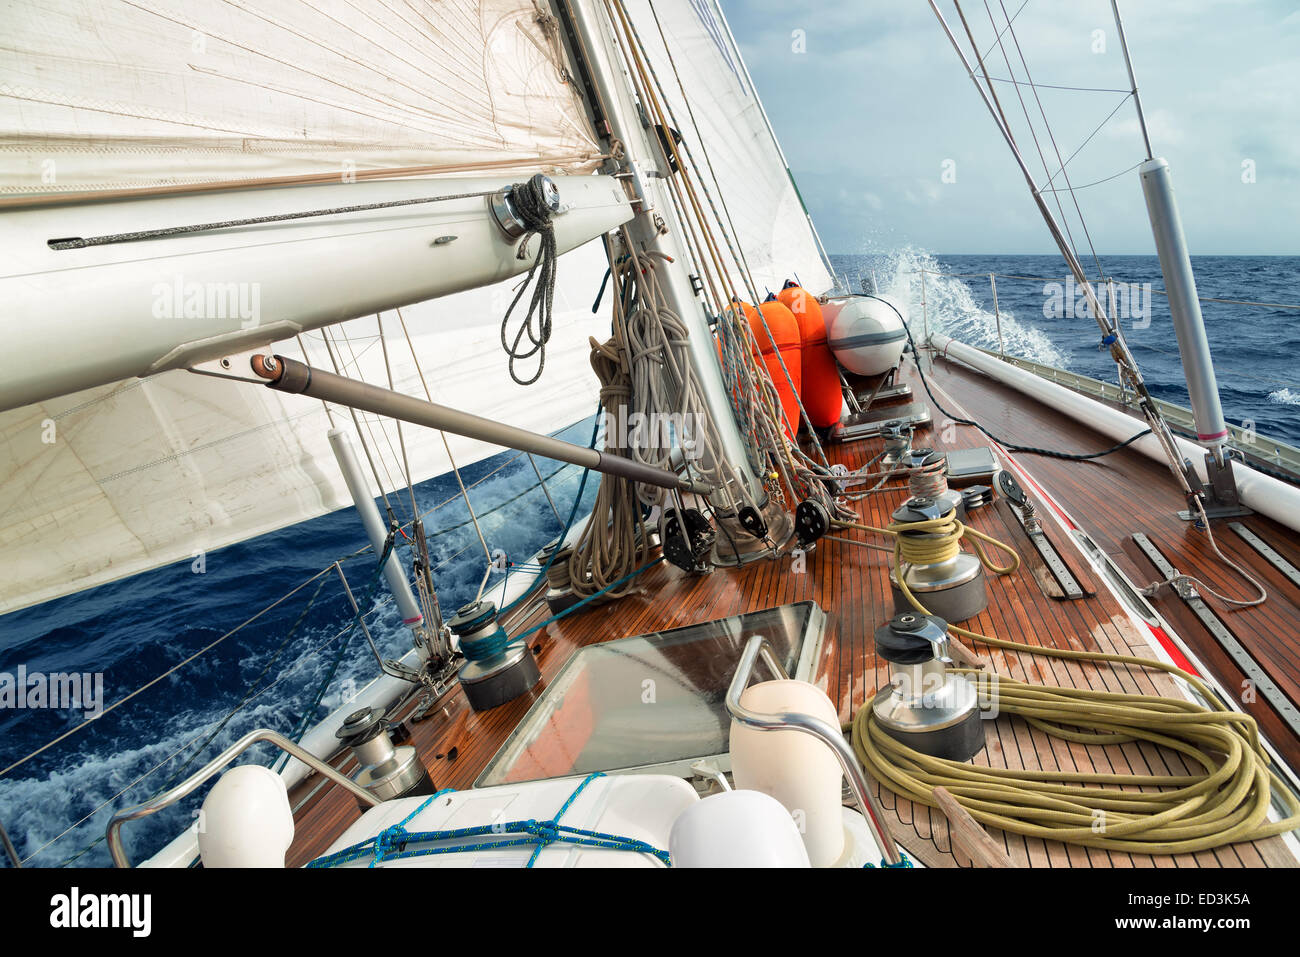 sail boat in the ocean - Stock Image